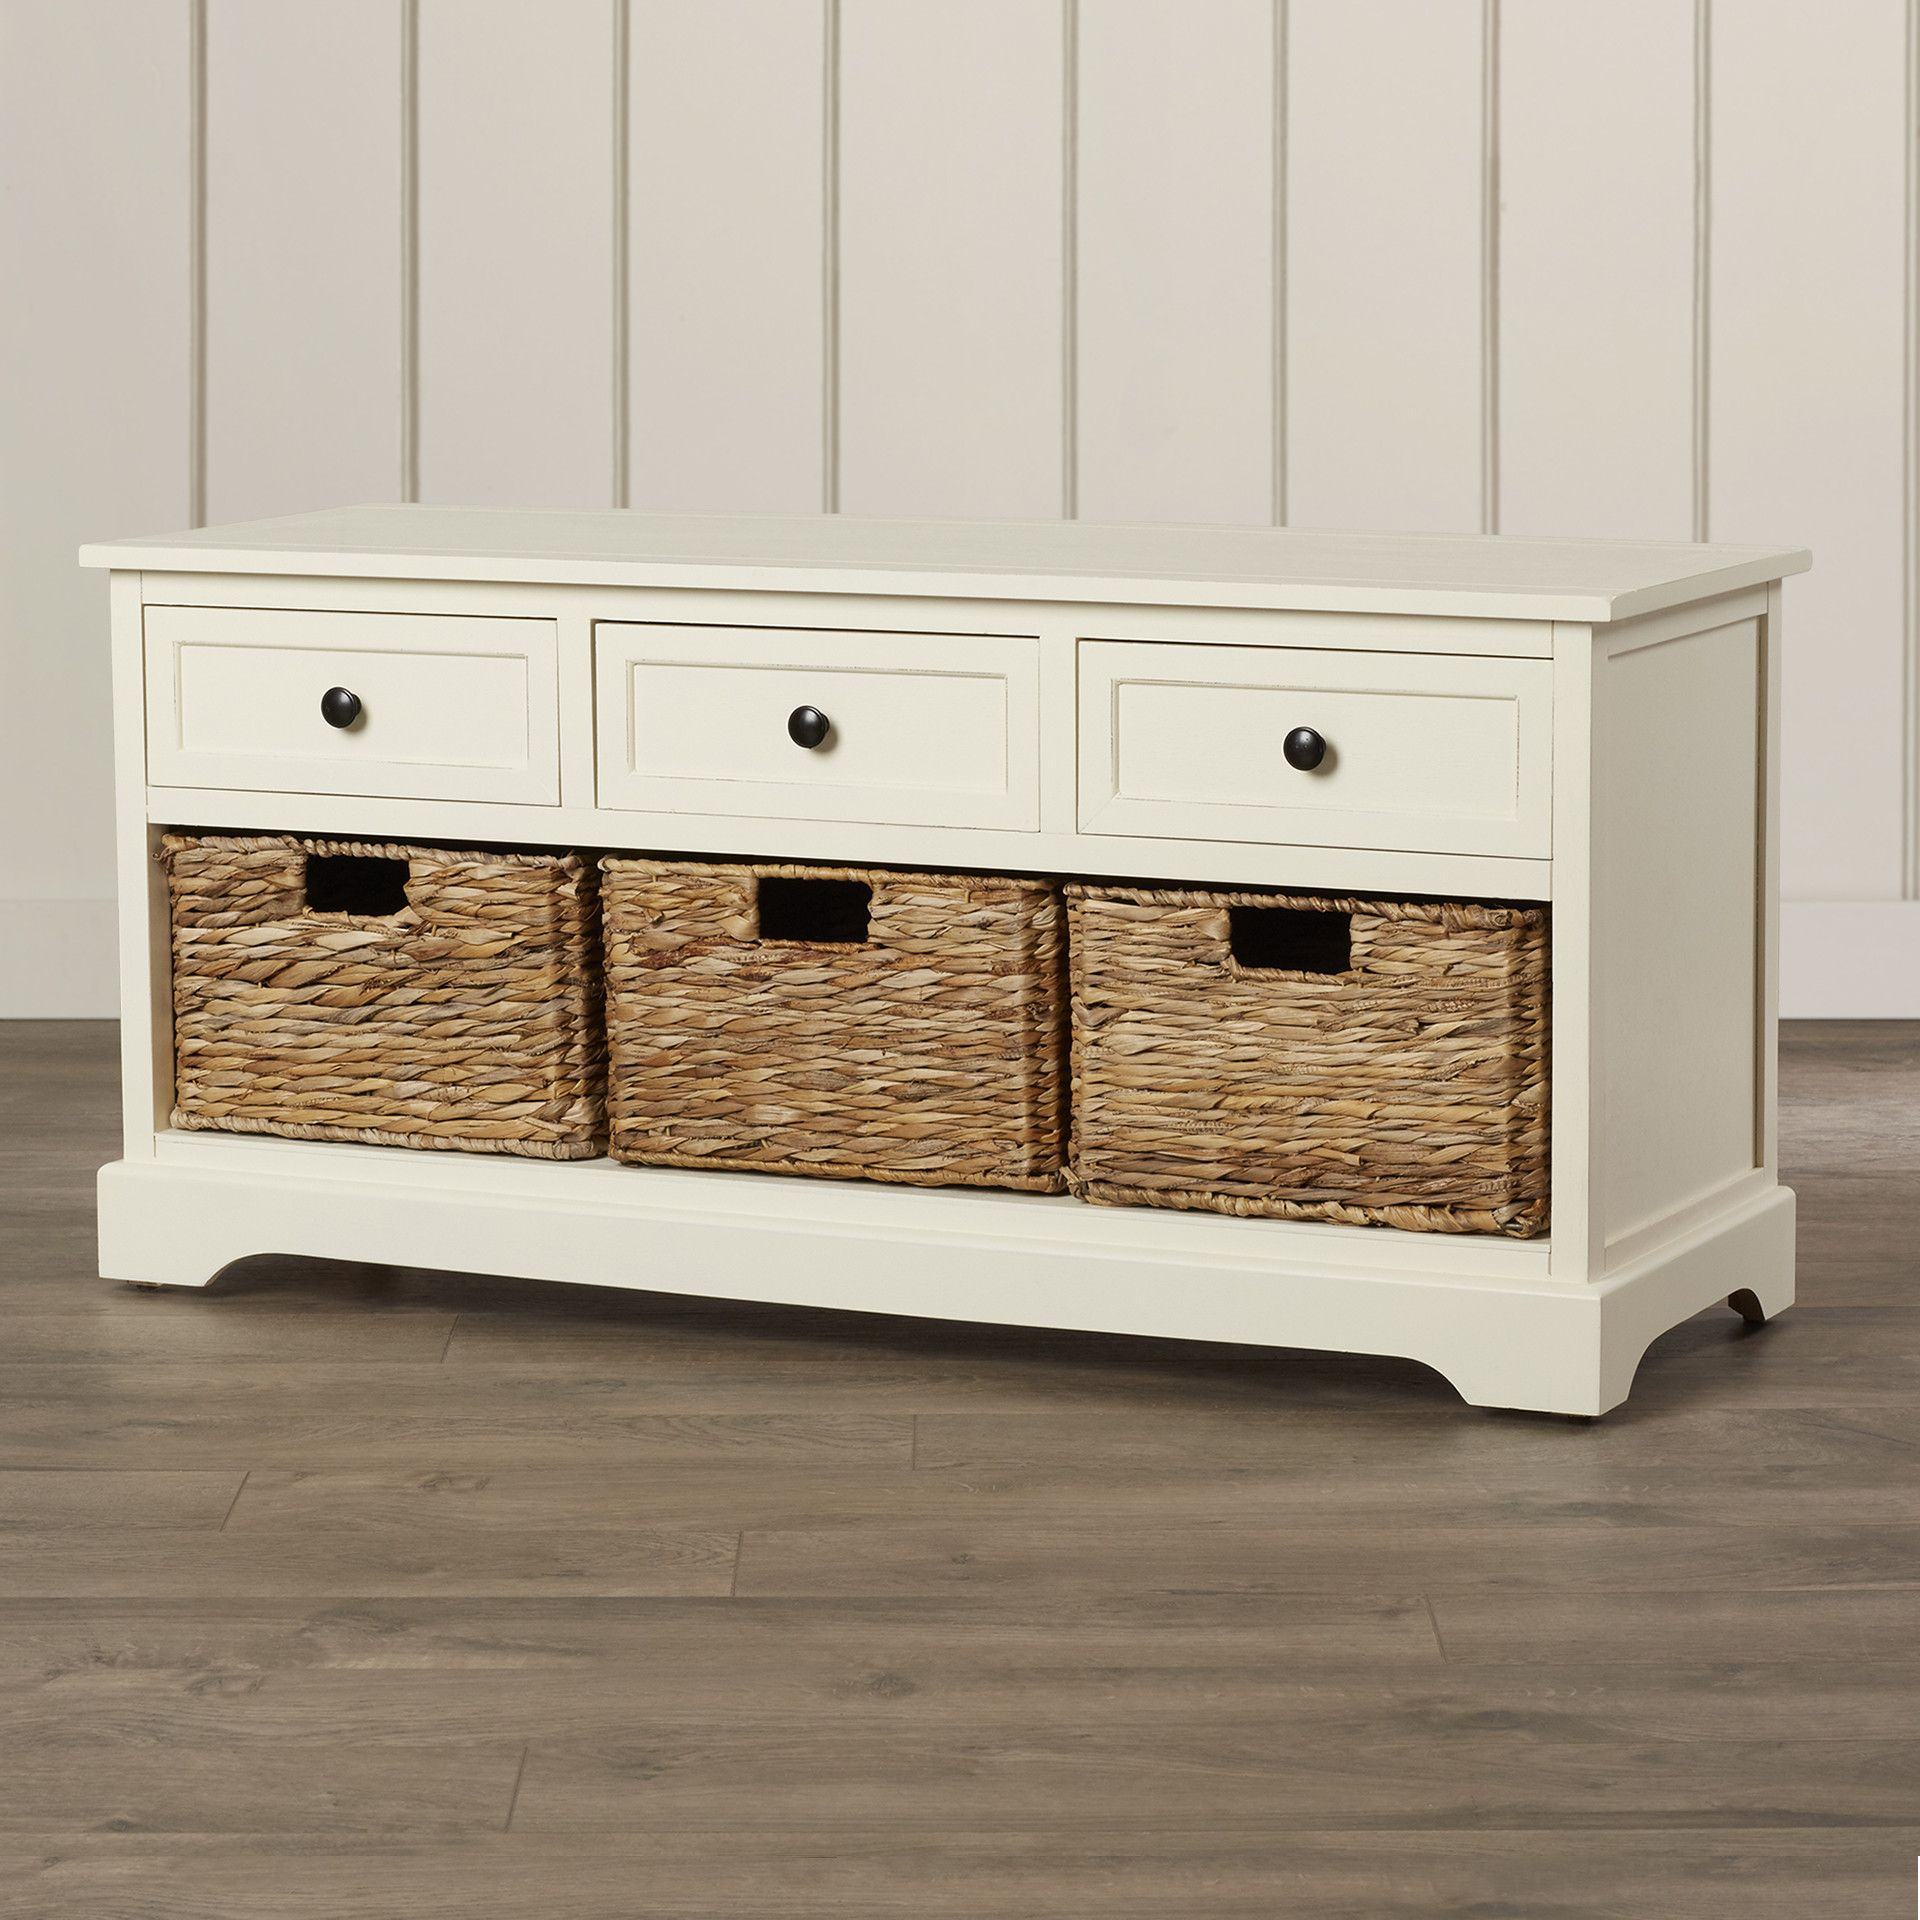 Excellent Mckinley Storage Bench Were Buying A House I Need New Machost Co Dining Chair Design Ideas Machostcouk